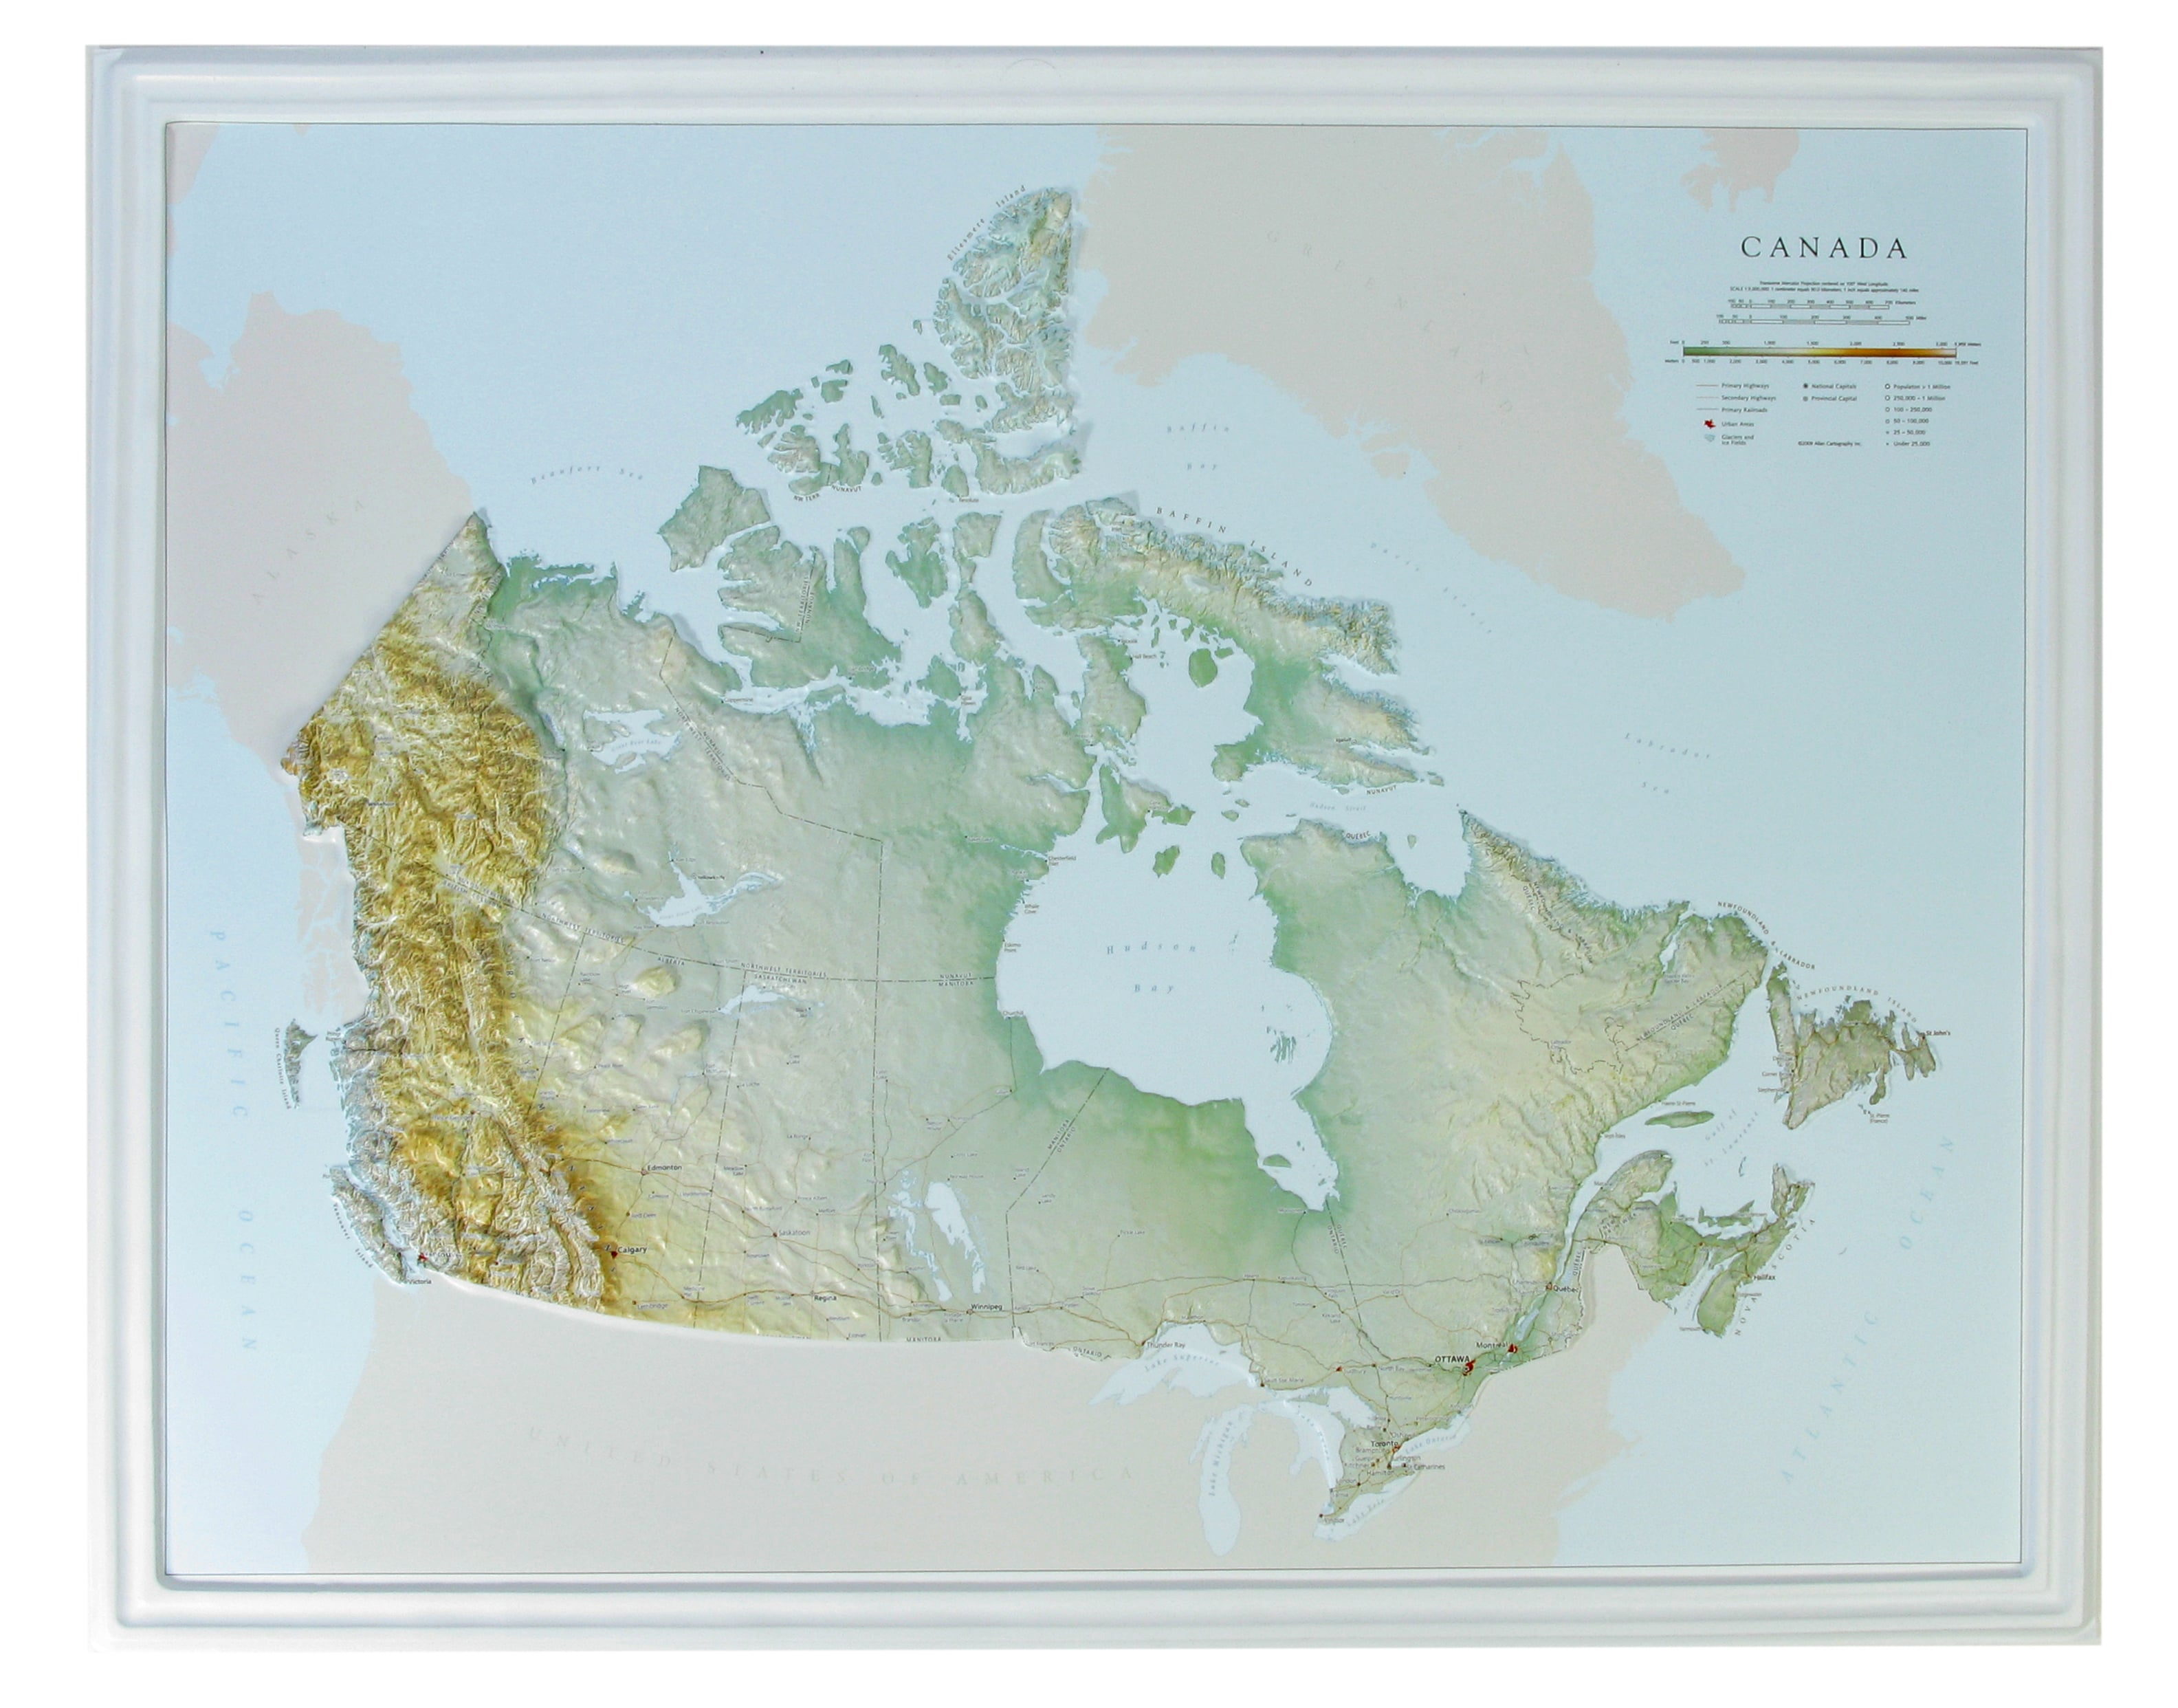 Ottawa Map Of Canada.Canada 3d Raised Relief Map 3d Countries And Regions Maps 3d